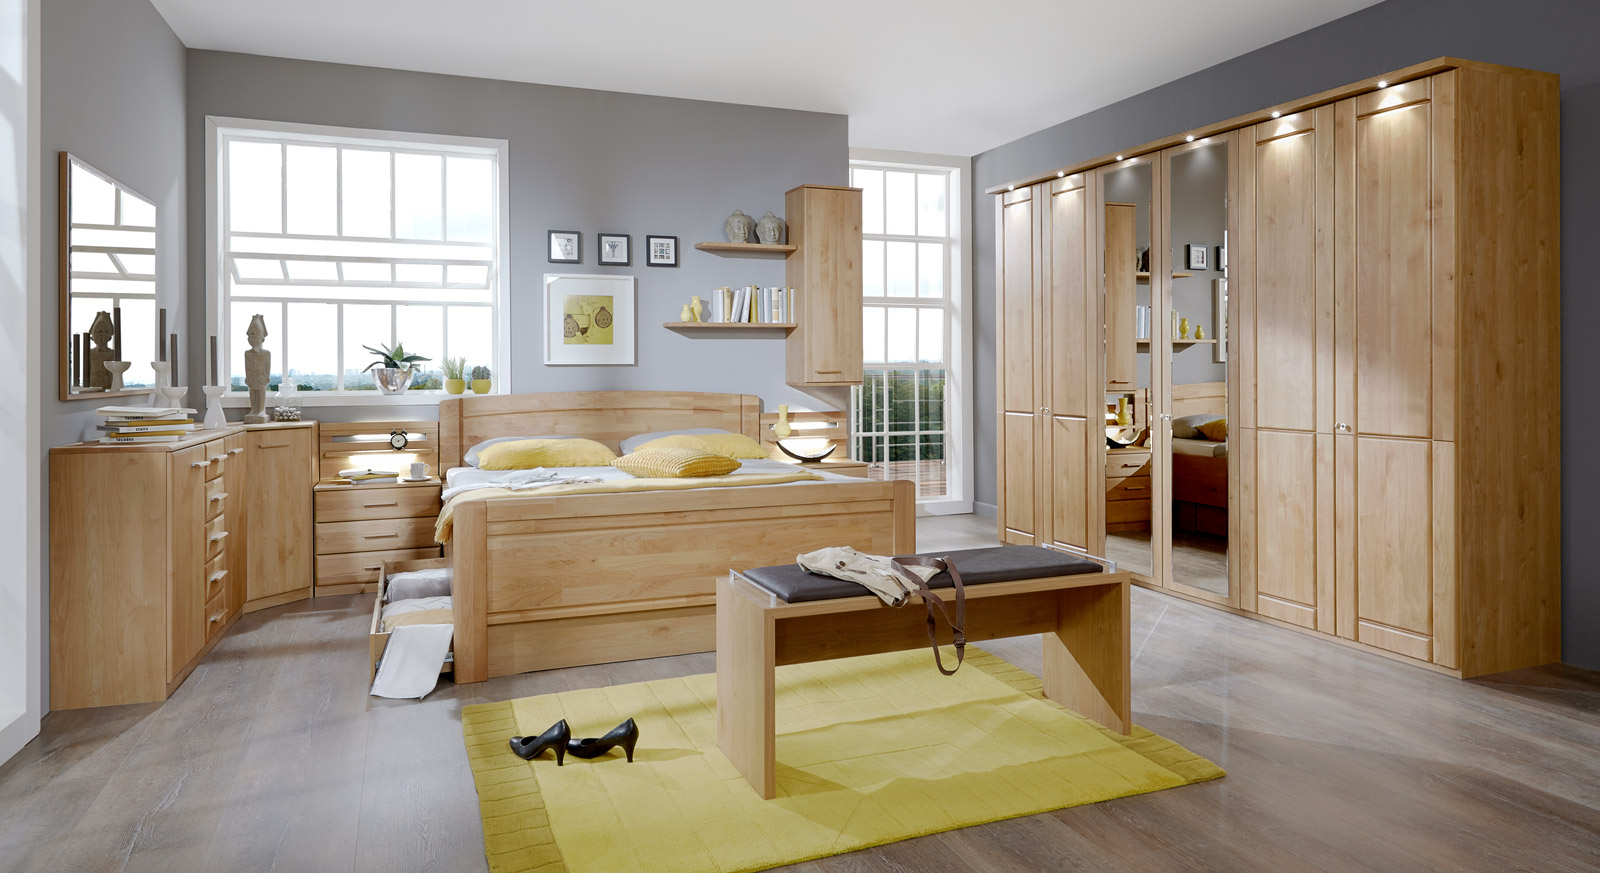 h ngeschrank f r schlafzimmer optional mit regalb den. Black Bedroom Furniture Sets. Home Design Ideas